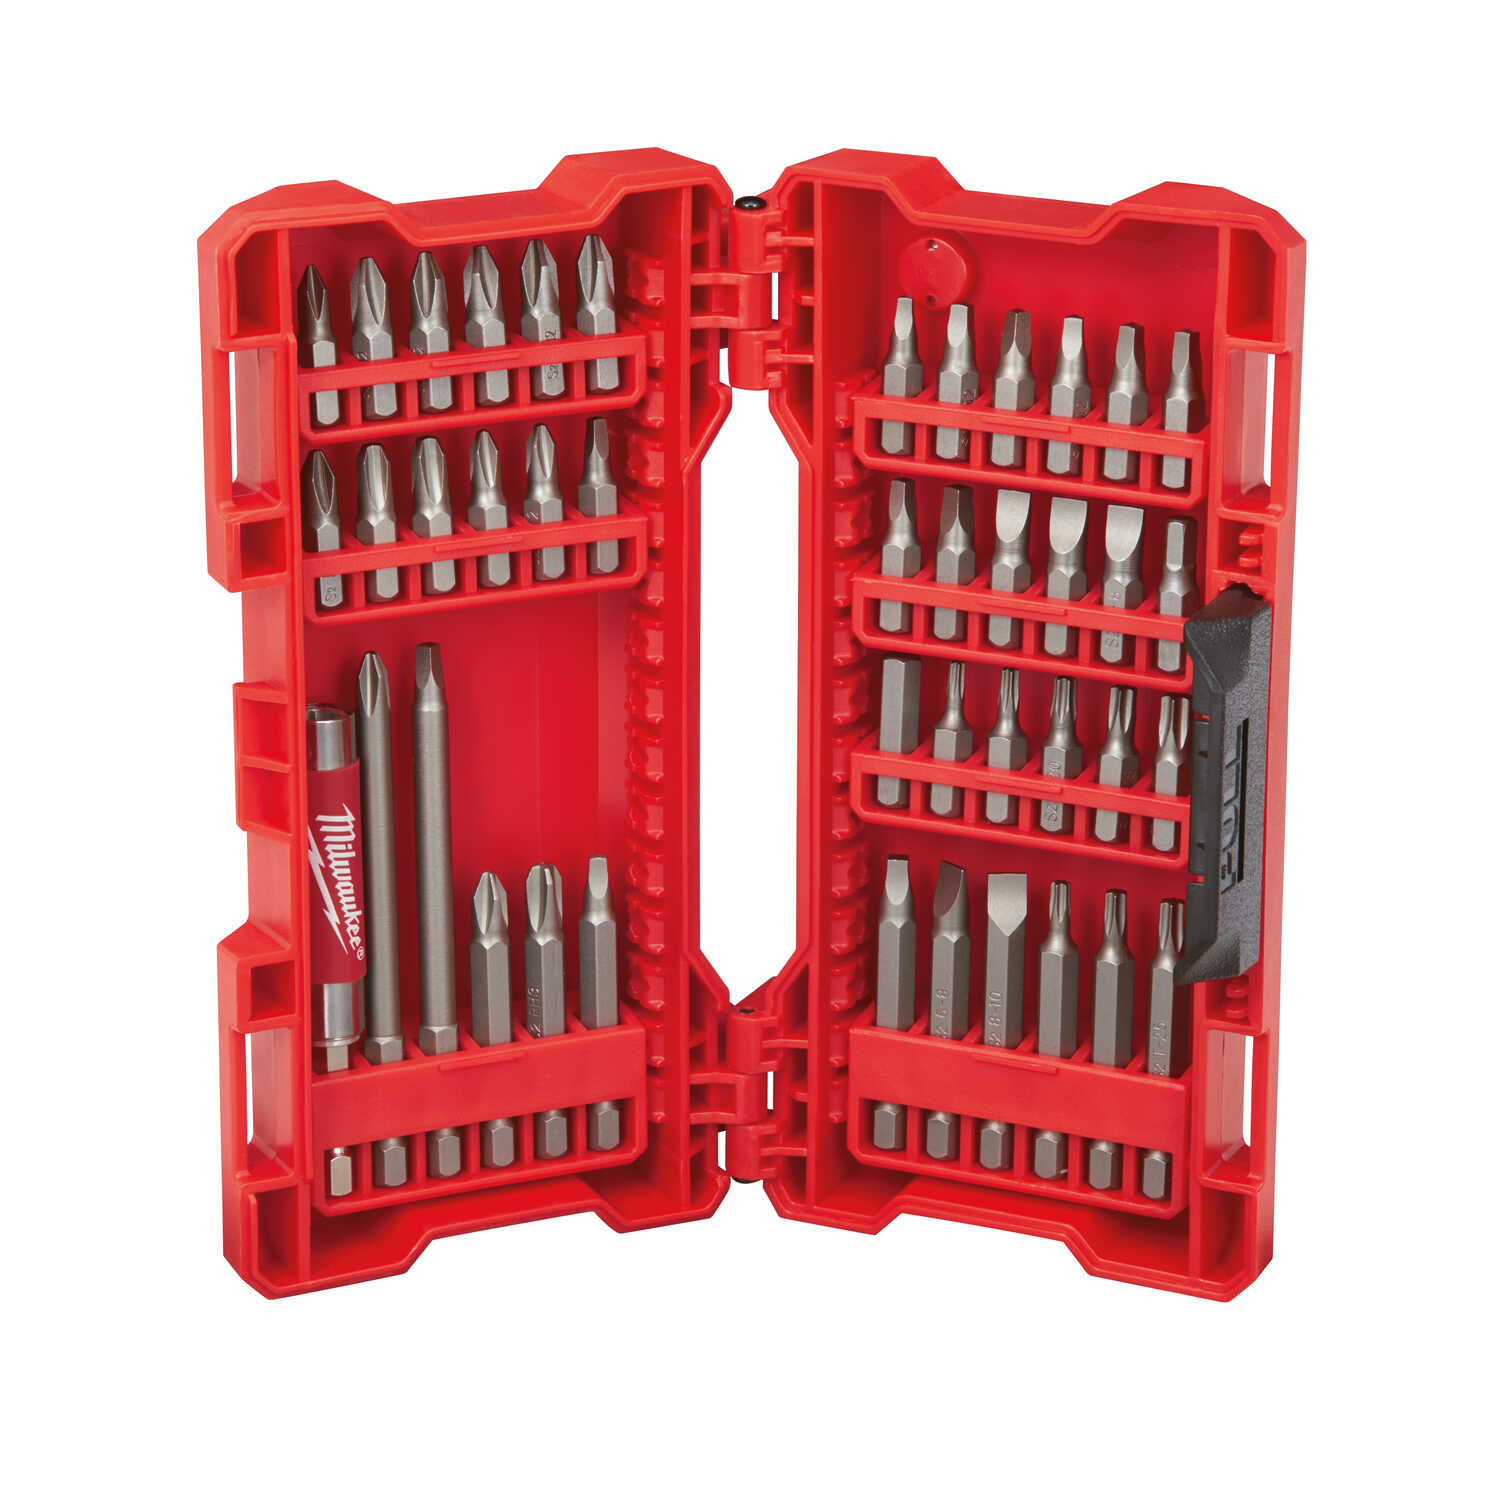 Milwaukee  SHOCKWAVE  Assorted  1-4 in. L S2 Tool Steel  1/4 in. 42 pc. Hex Shank  Screwdriver Bit S